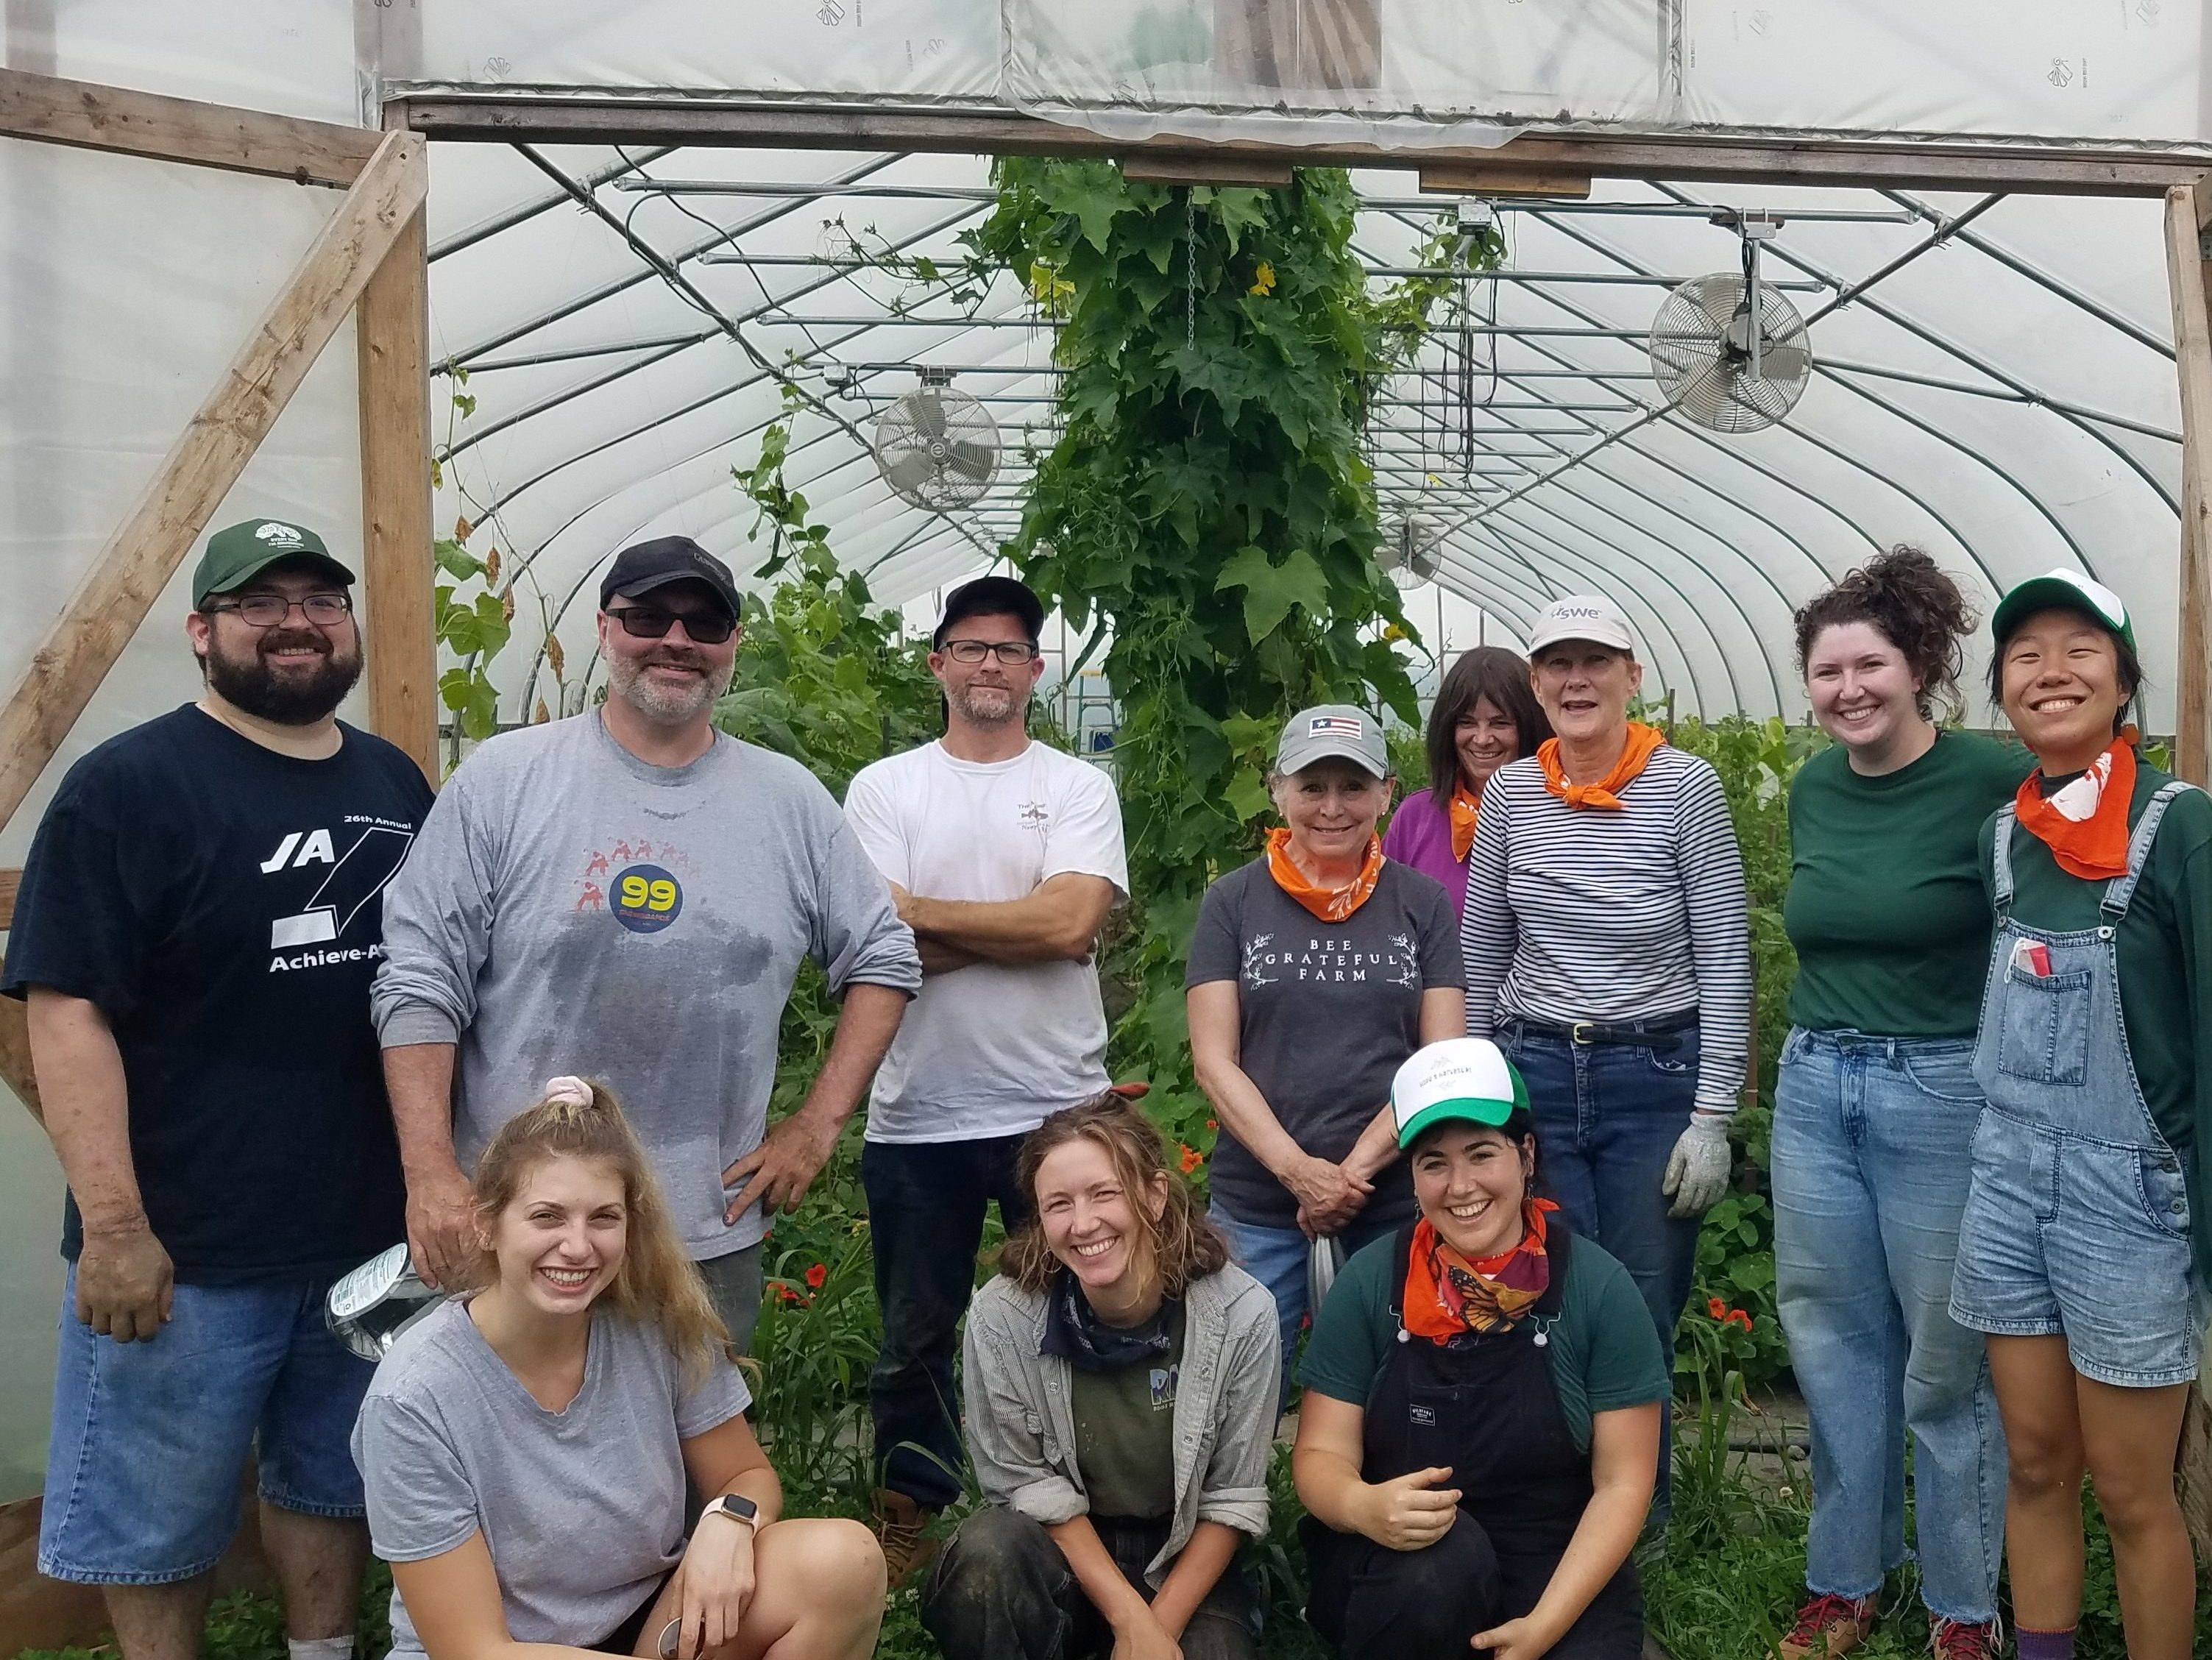 Chefs from the Newport Restaurant Group Join Hope's Harvest in the Field